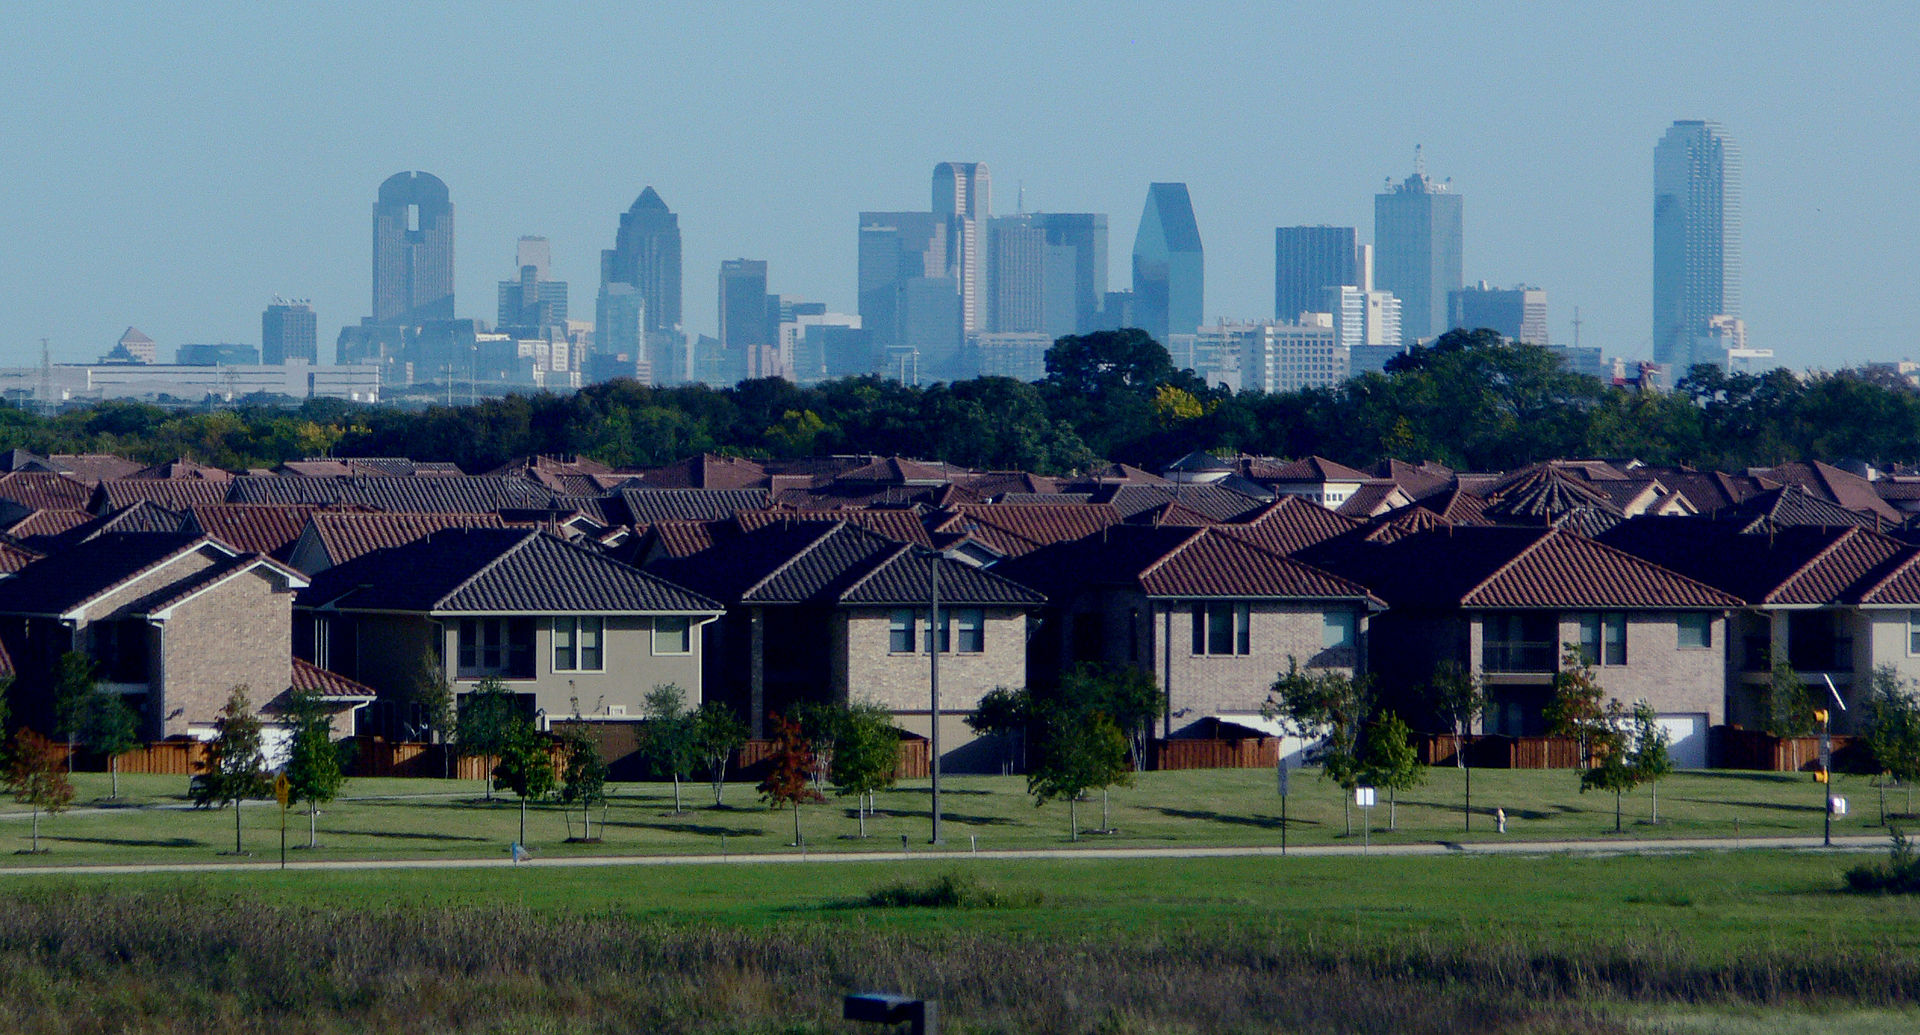 Skyline and Suburbs